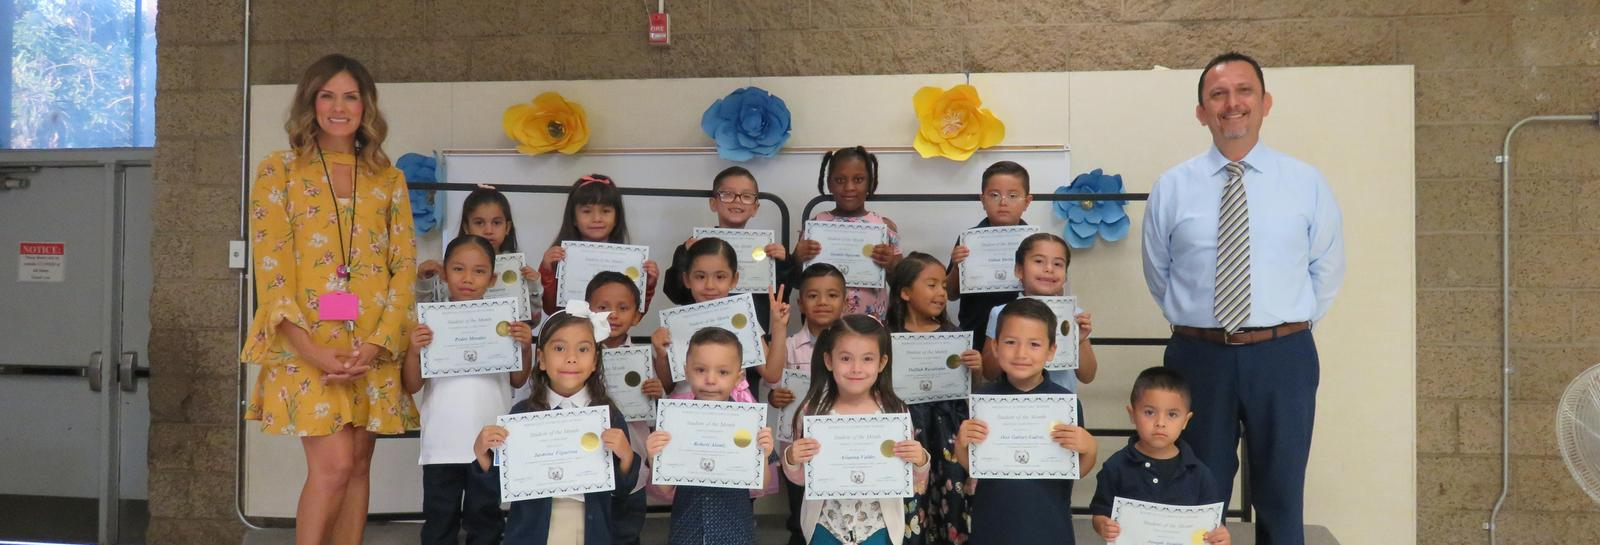 Roosevelt students are recognized at our Student of the Month Assemblies for their achievements in English Language Arts, Math, Science and PBIS Citizenship.